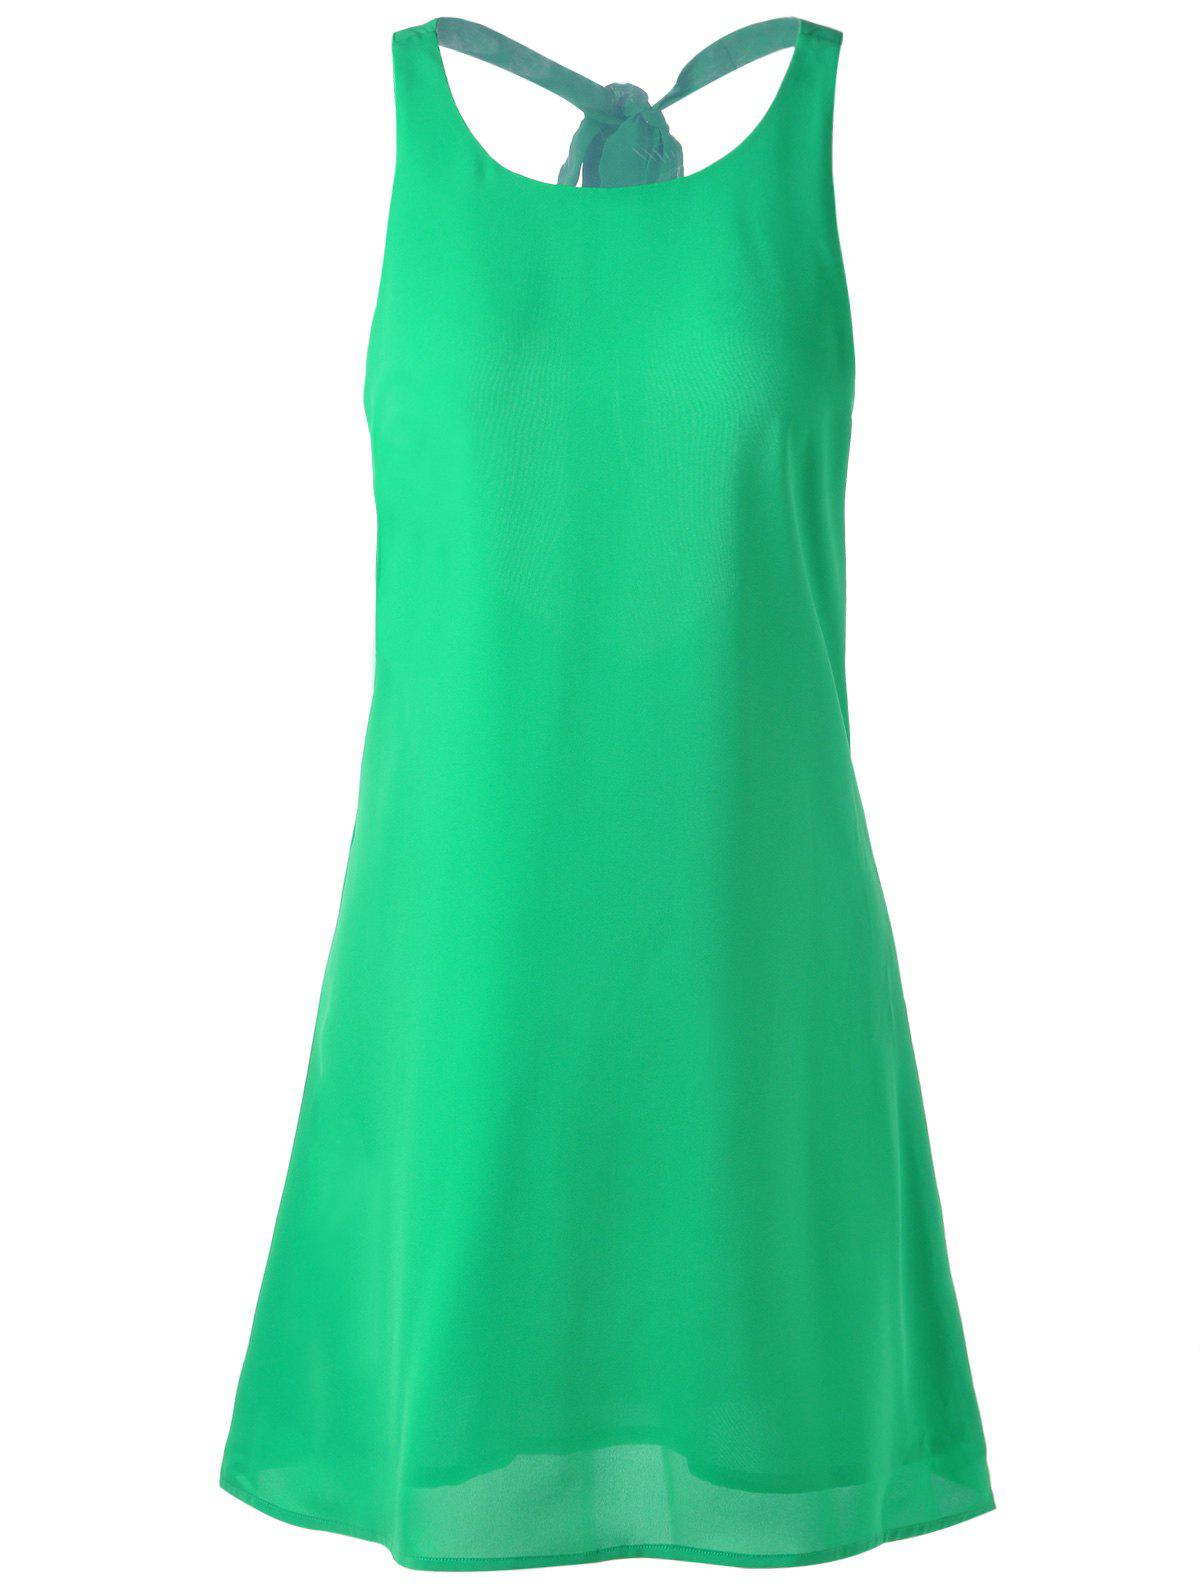 Fashionable Round Collar Back Out Bow Dress For Woman - GRASS GREEN S